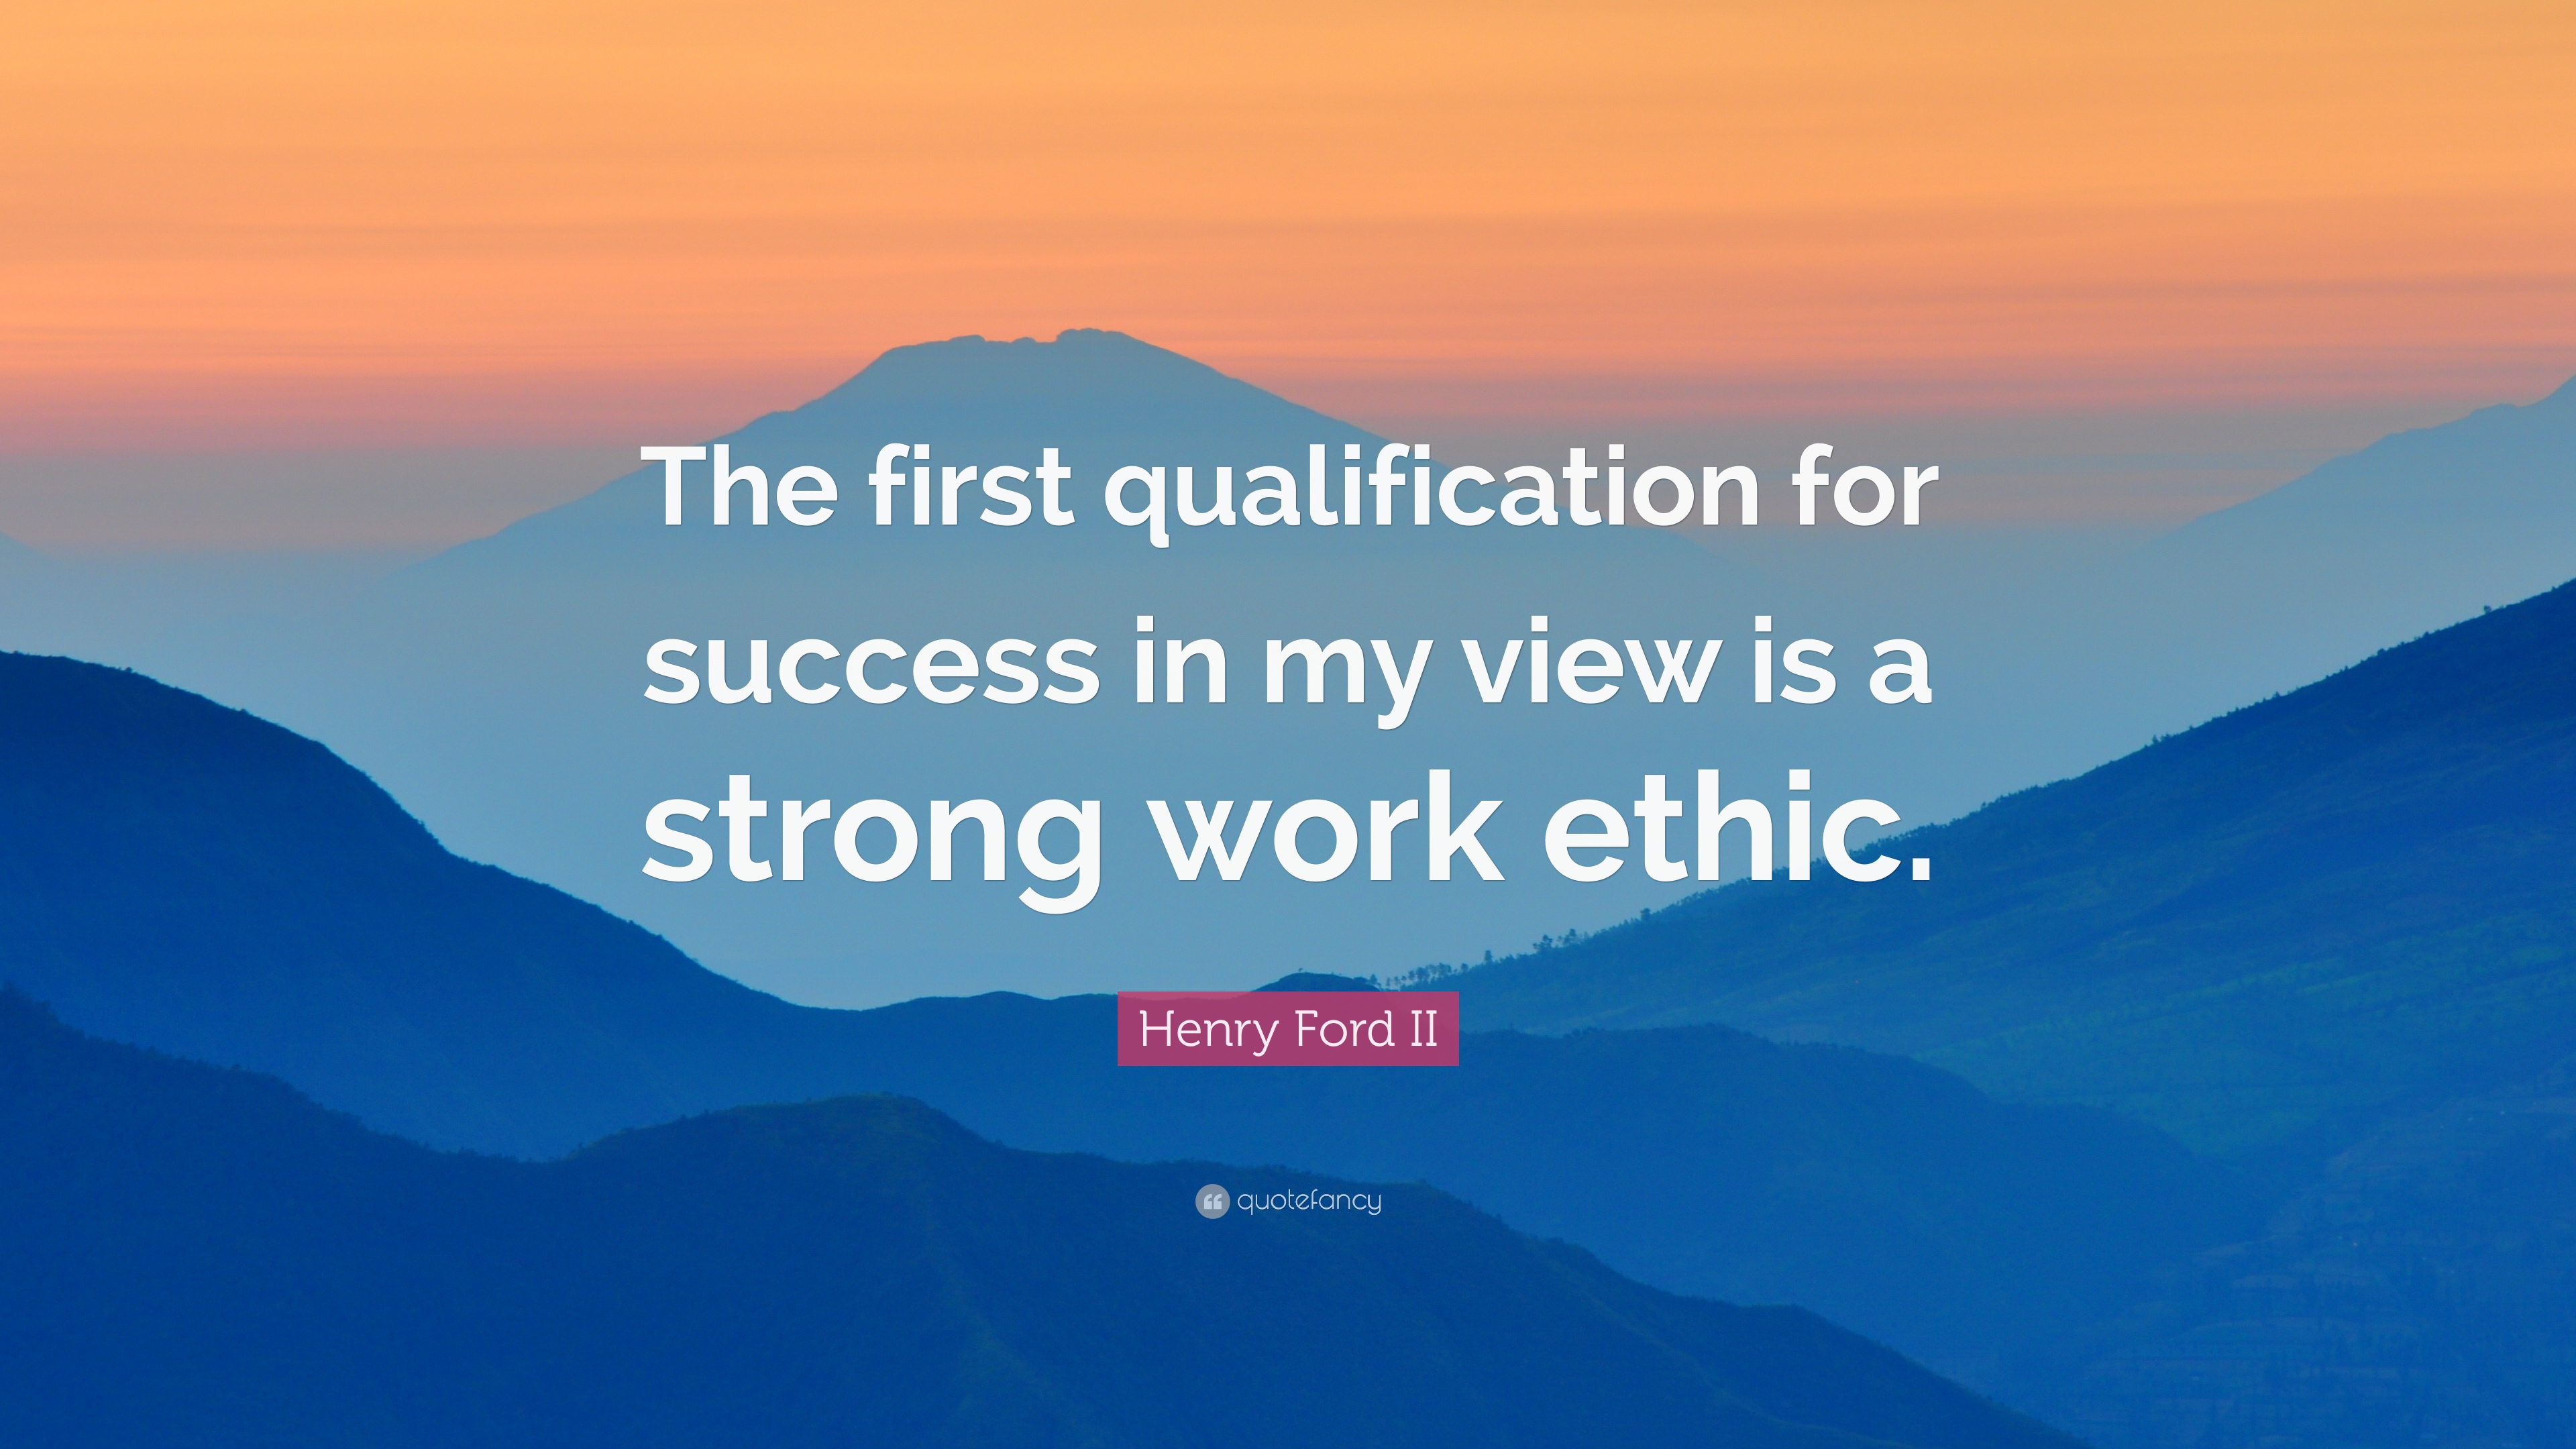 henry ford ii quote the first qualification for success in my henry ford ii quote the first qualification for success in my view is a